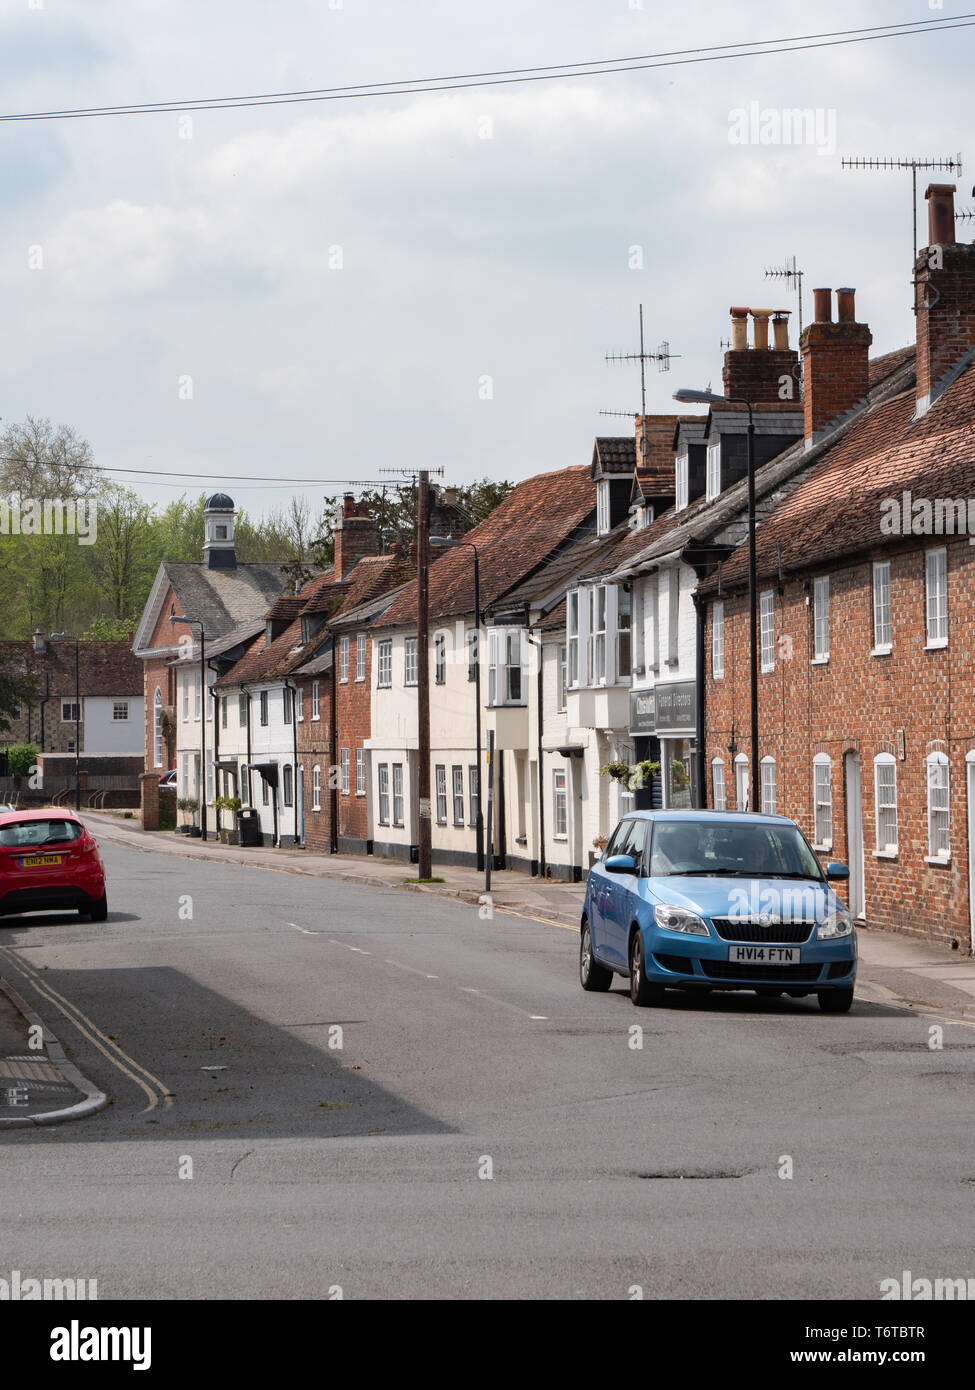 House frontages in South Street, Wilton, Salisbury, Wiltshire, UK. - Stock Image